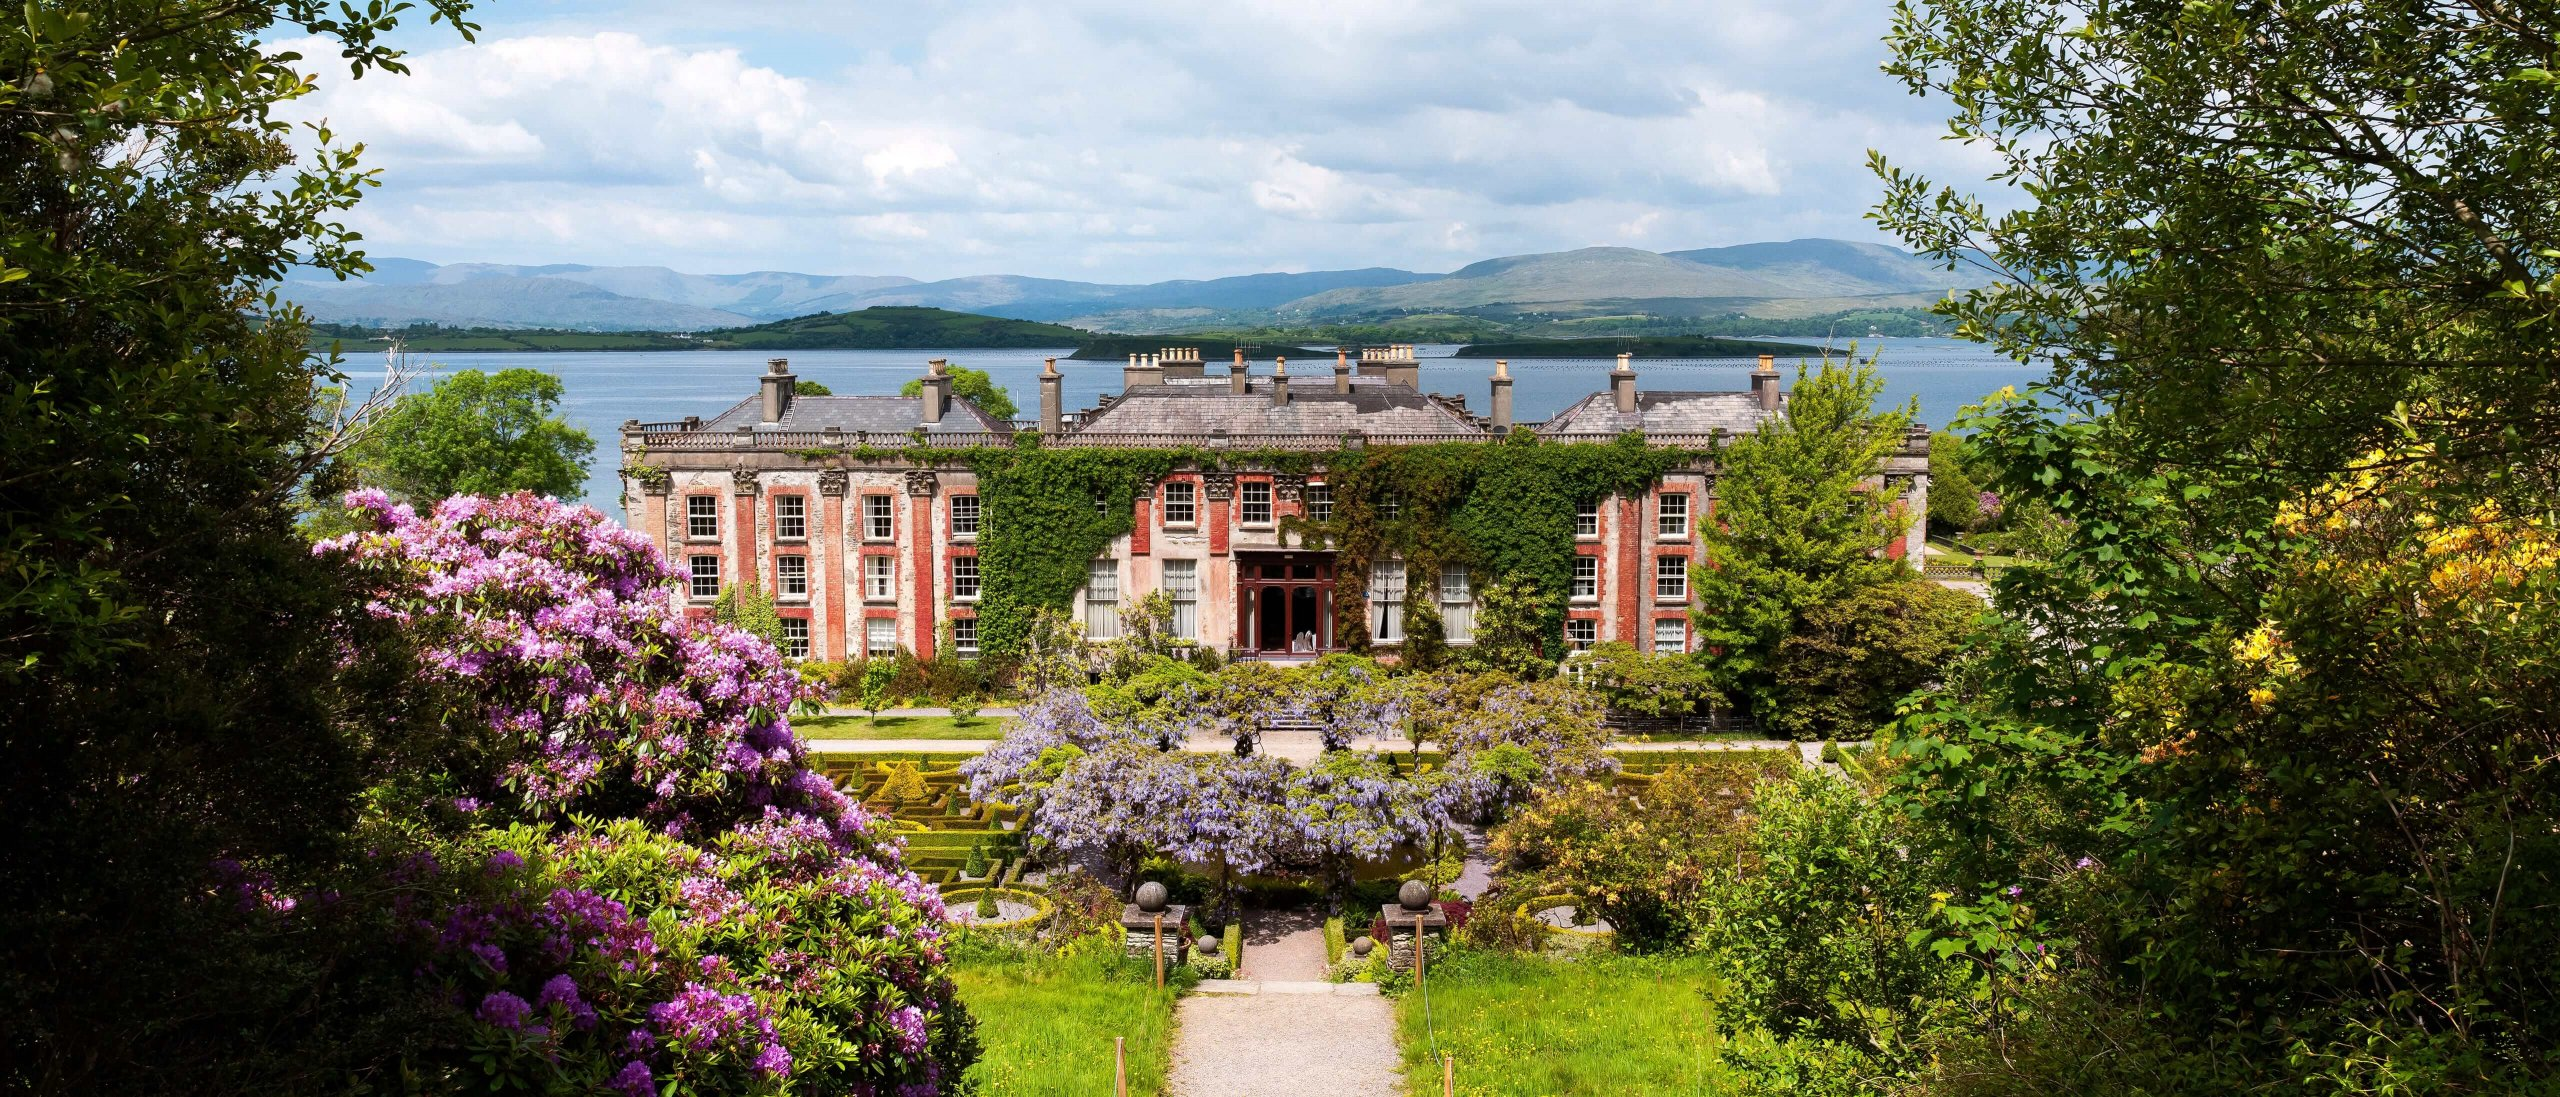 Bantry House Gardens in Ireland with scenic mountain and sea view in the background